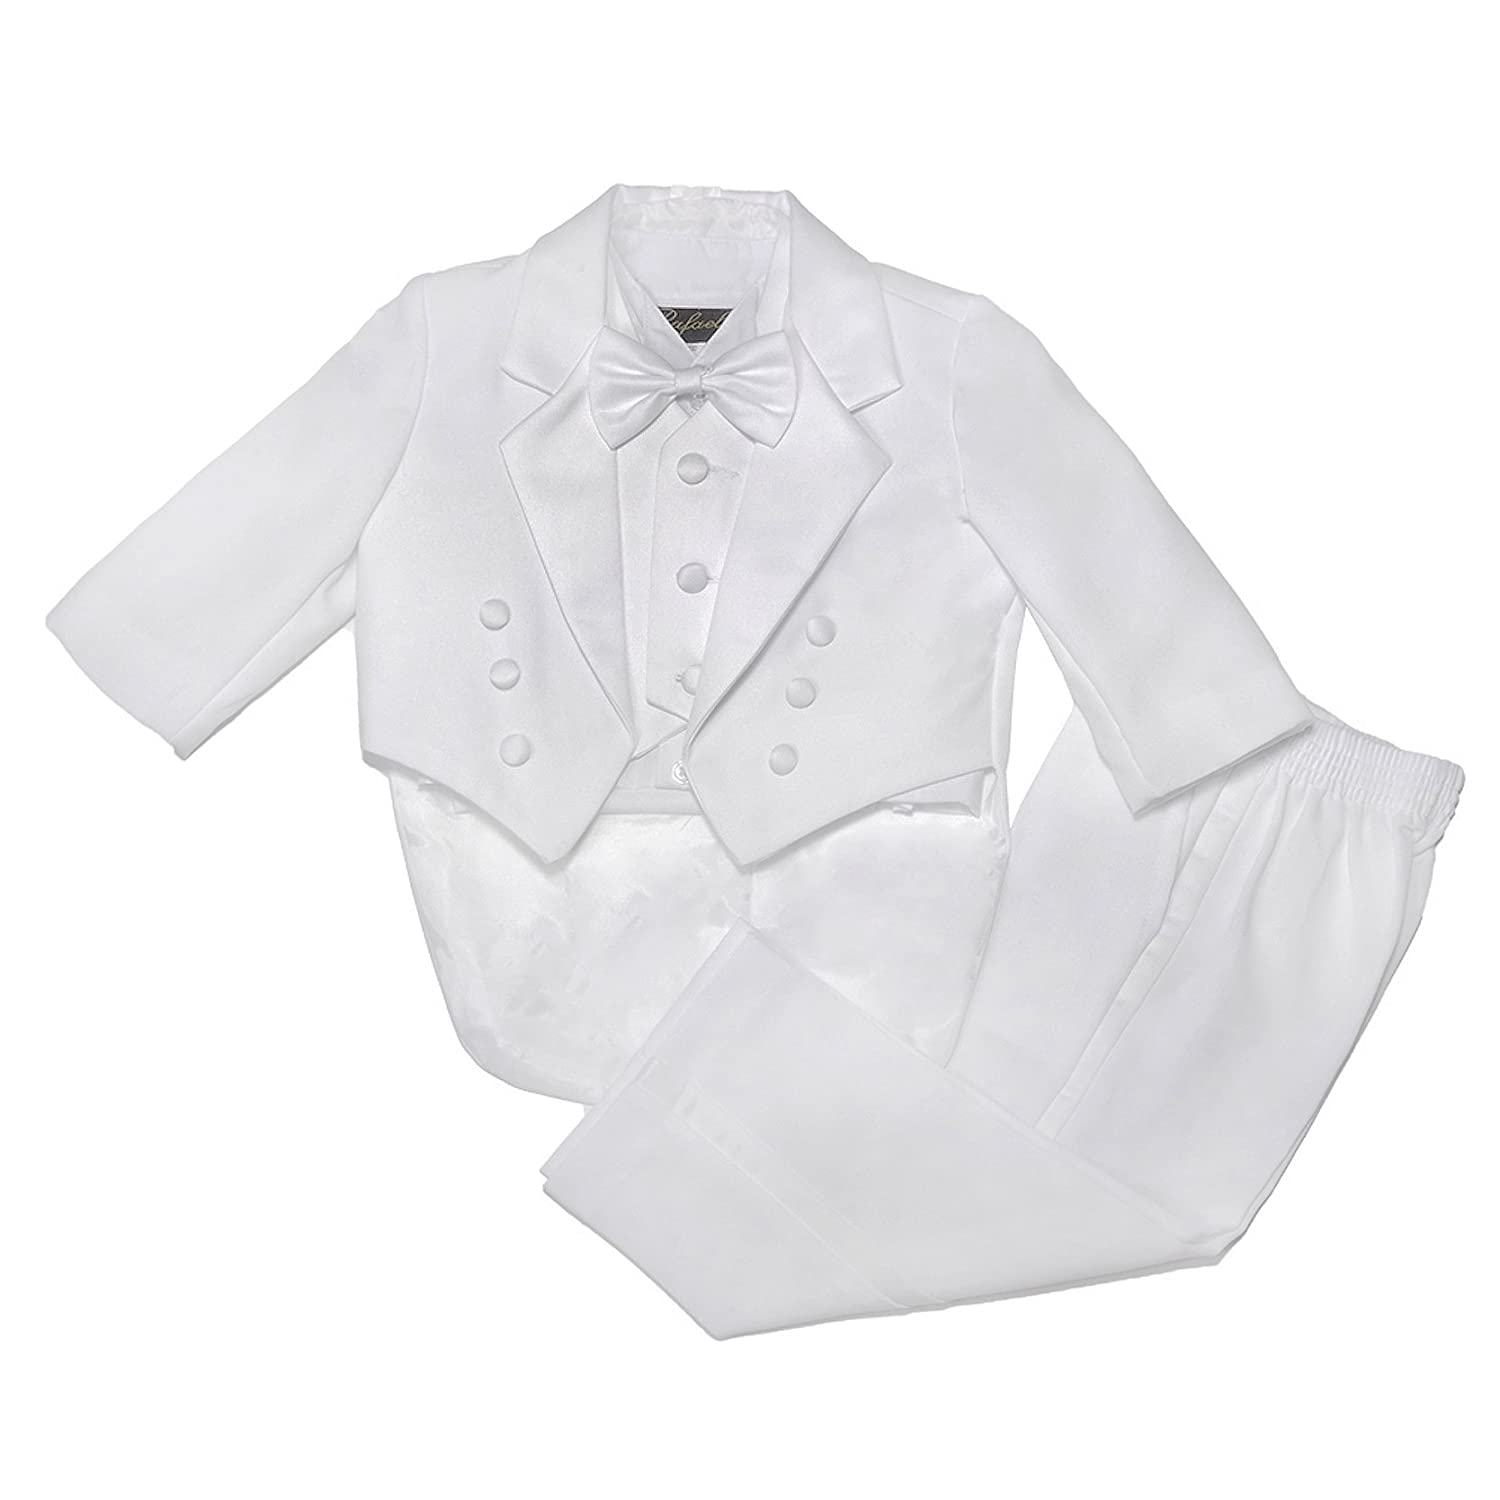 Nancy August Classic Baby Boy to Teen Formal Tuxedo with Tail in White GUPWHTTUX10B